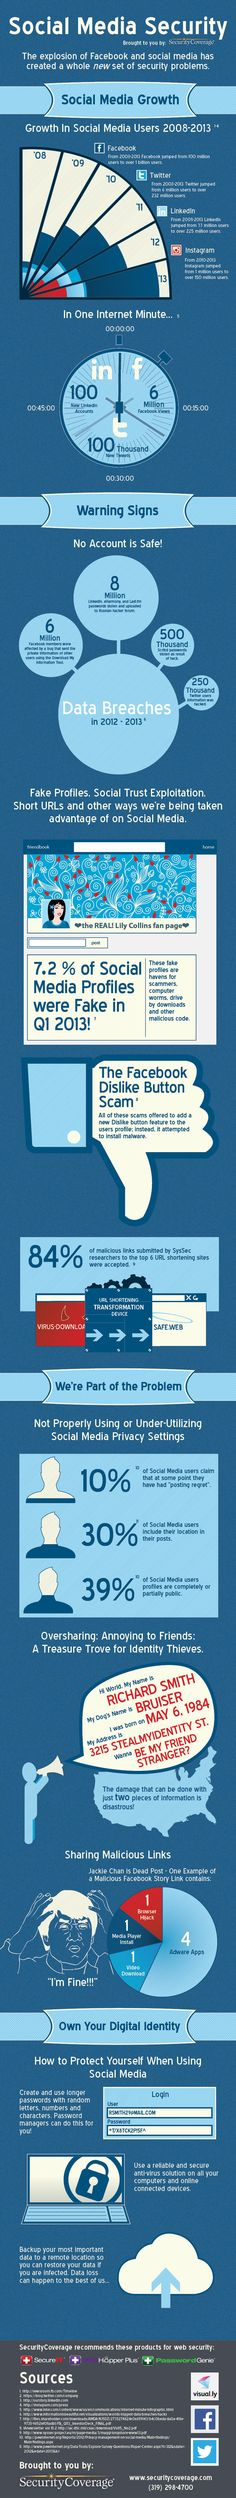 Facebook, Twitter, LinkedIn, Instagram – Social Media Security Tips [INFOGRAPHIC]